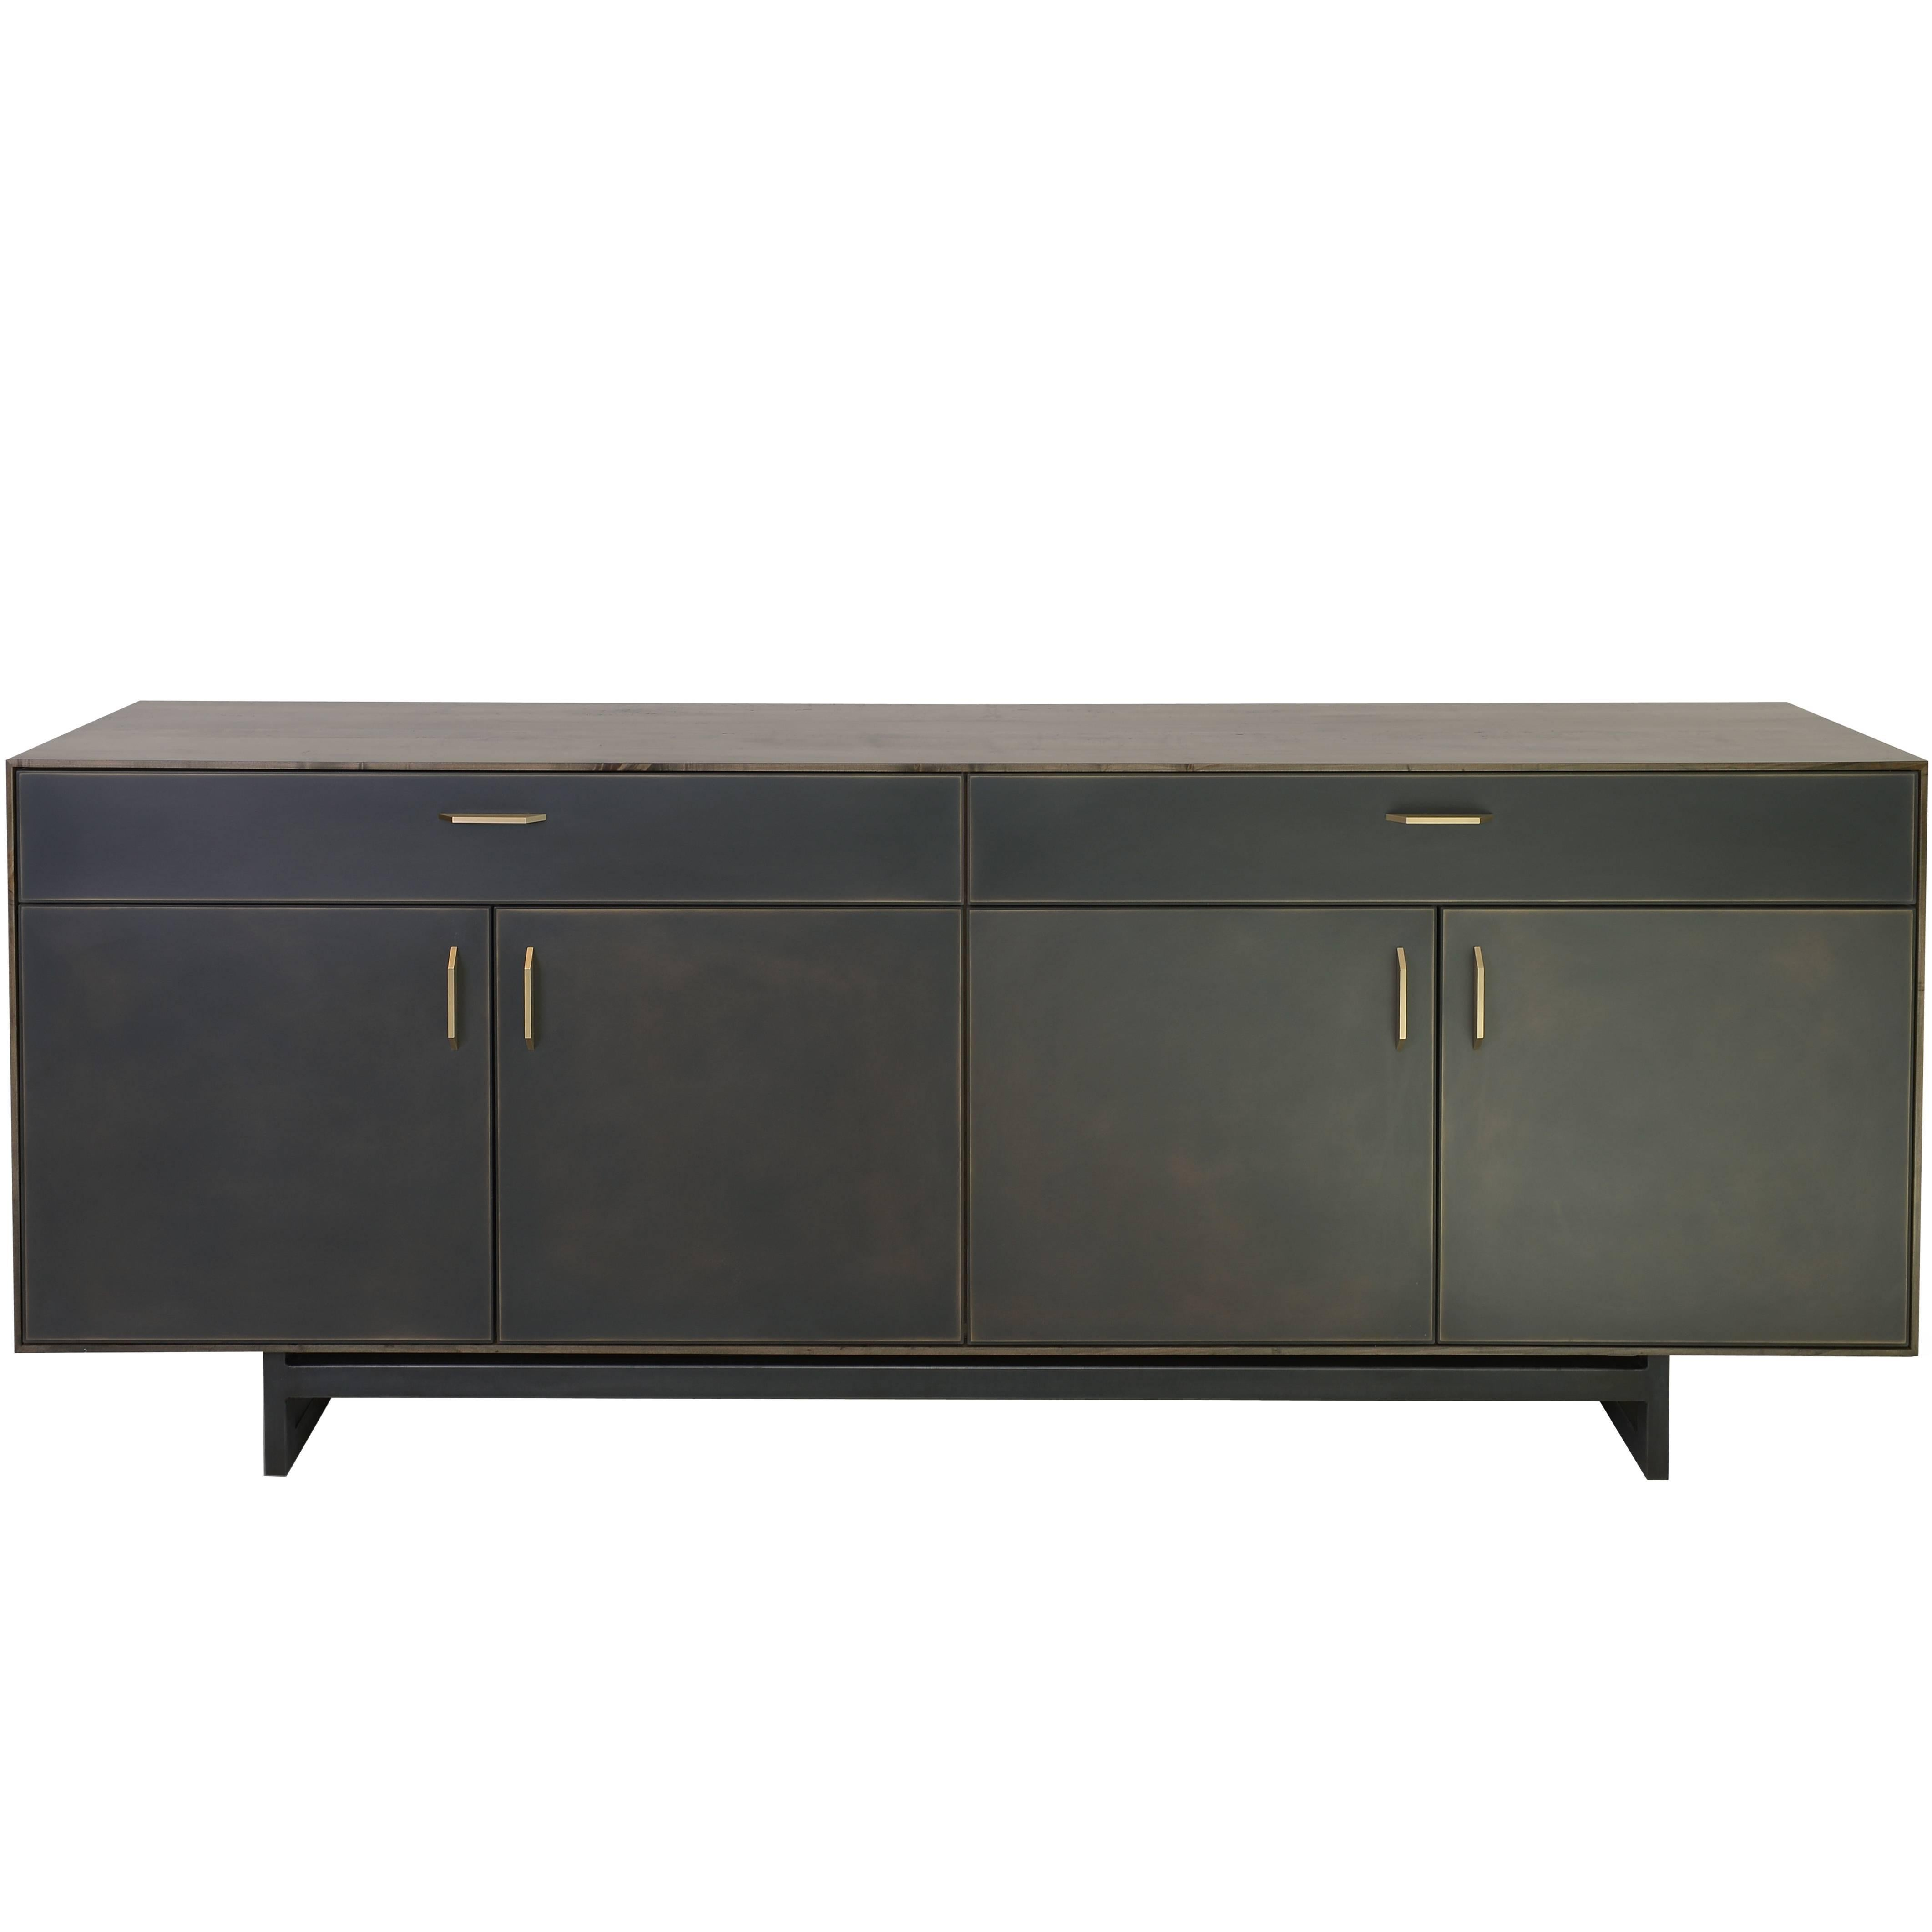 Gotham Credenza - Customizable Wood, Metal and Resin